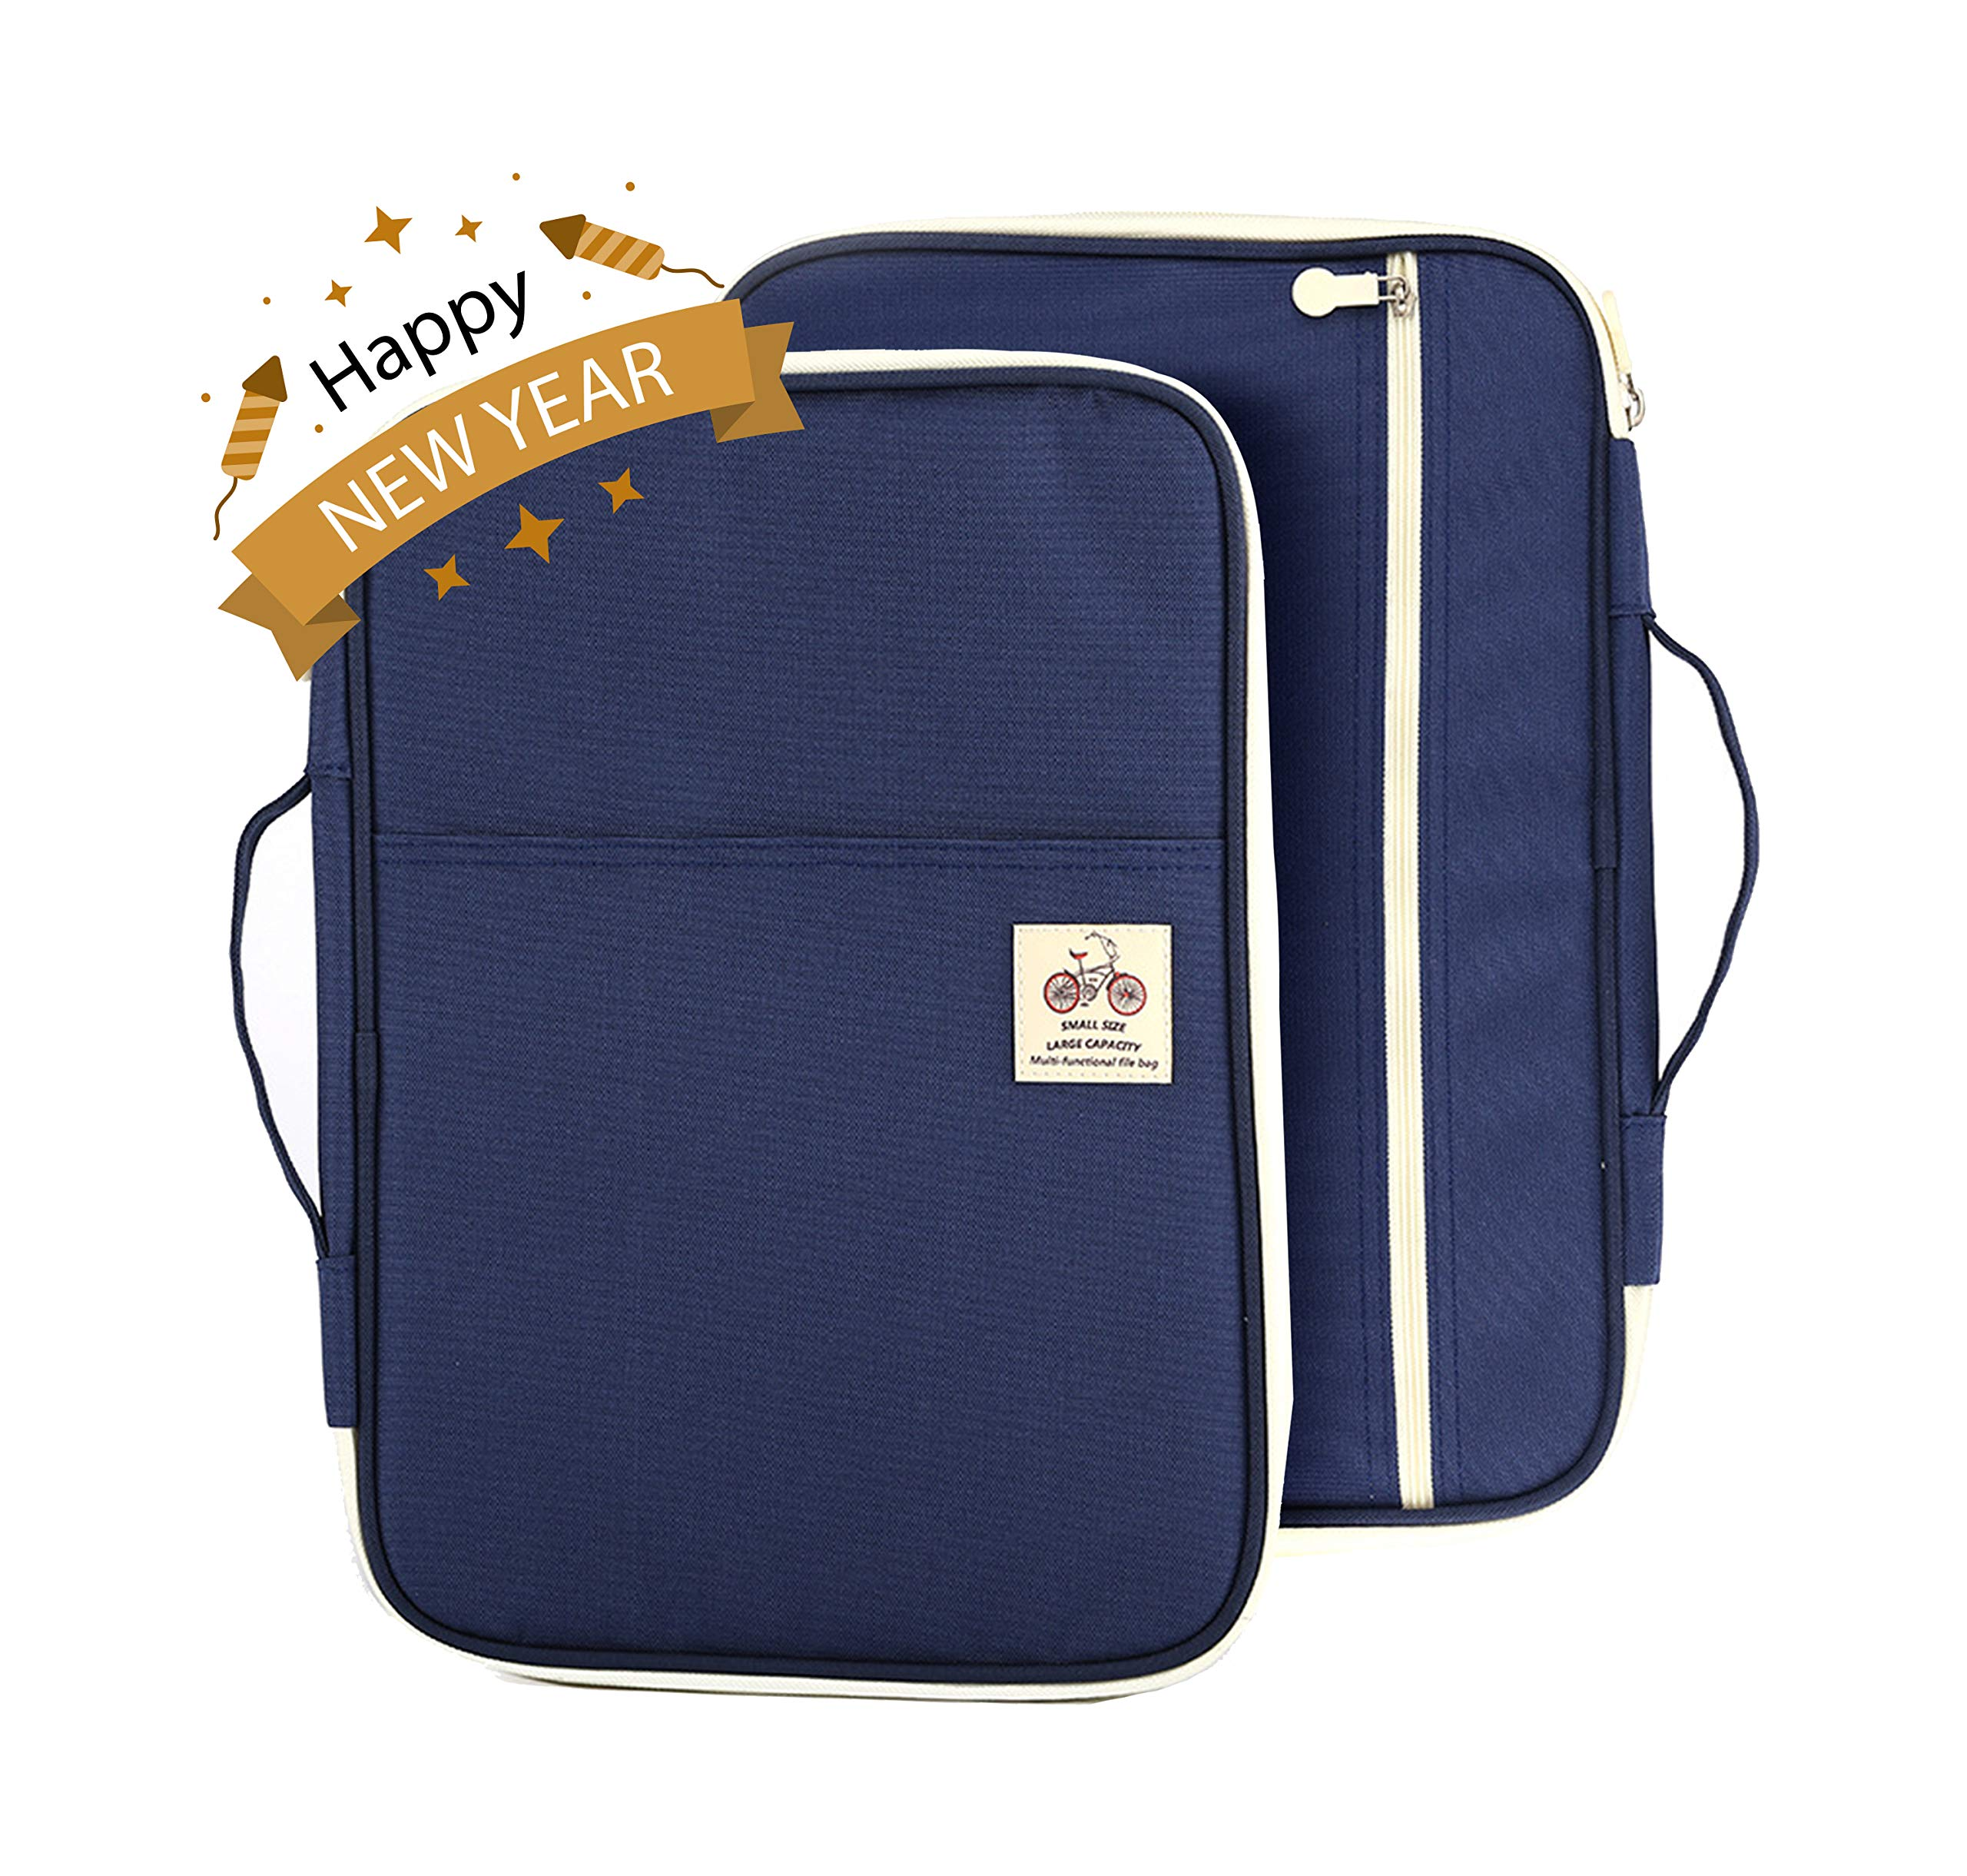 Lazyaunti Document Portfolio Padfolio Folders Organizer Binder Multi Function Water Repellent Travel Pouch Zipper Case for Laptop, Ipad, Kindle, Notebook, Pen (Navy Blue)